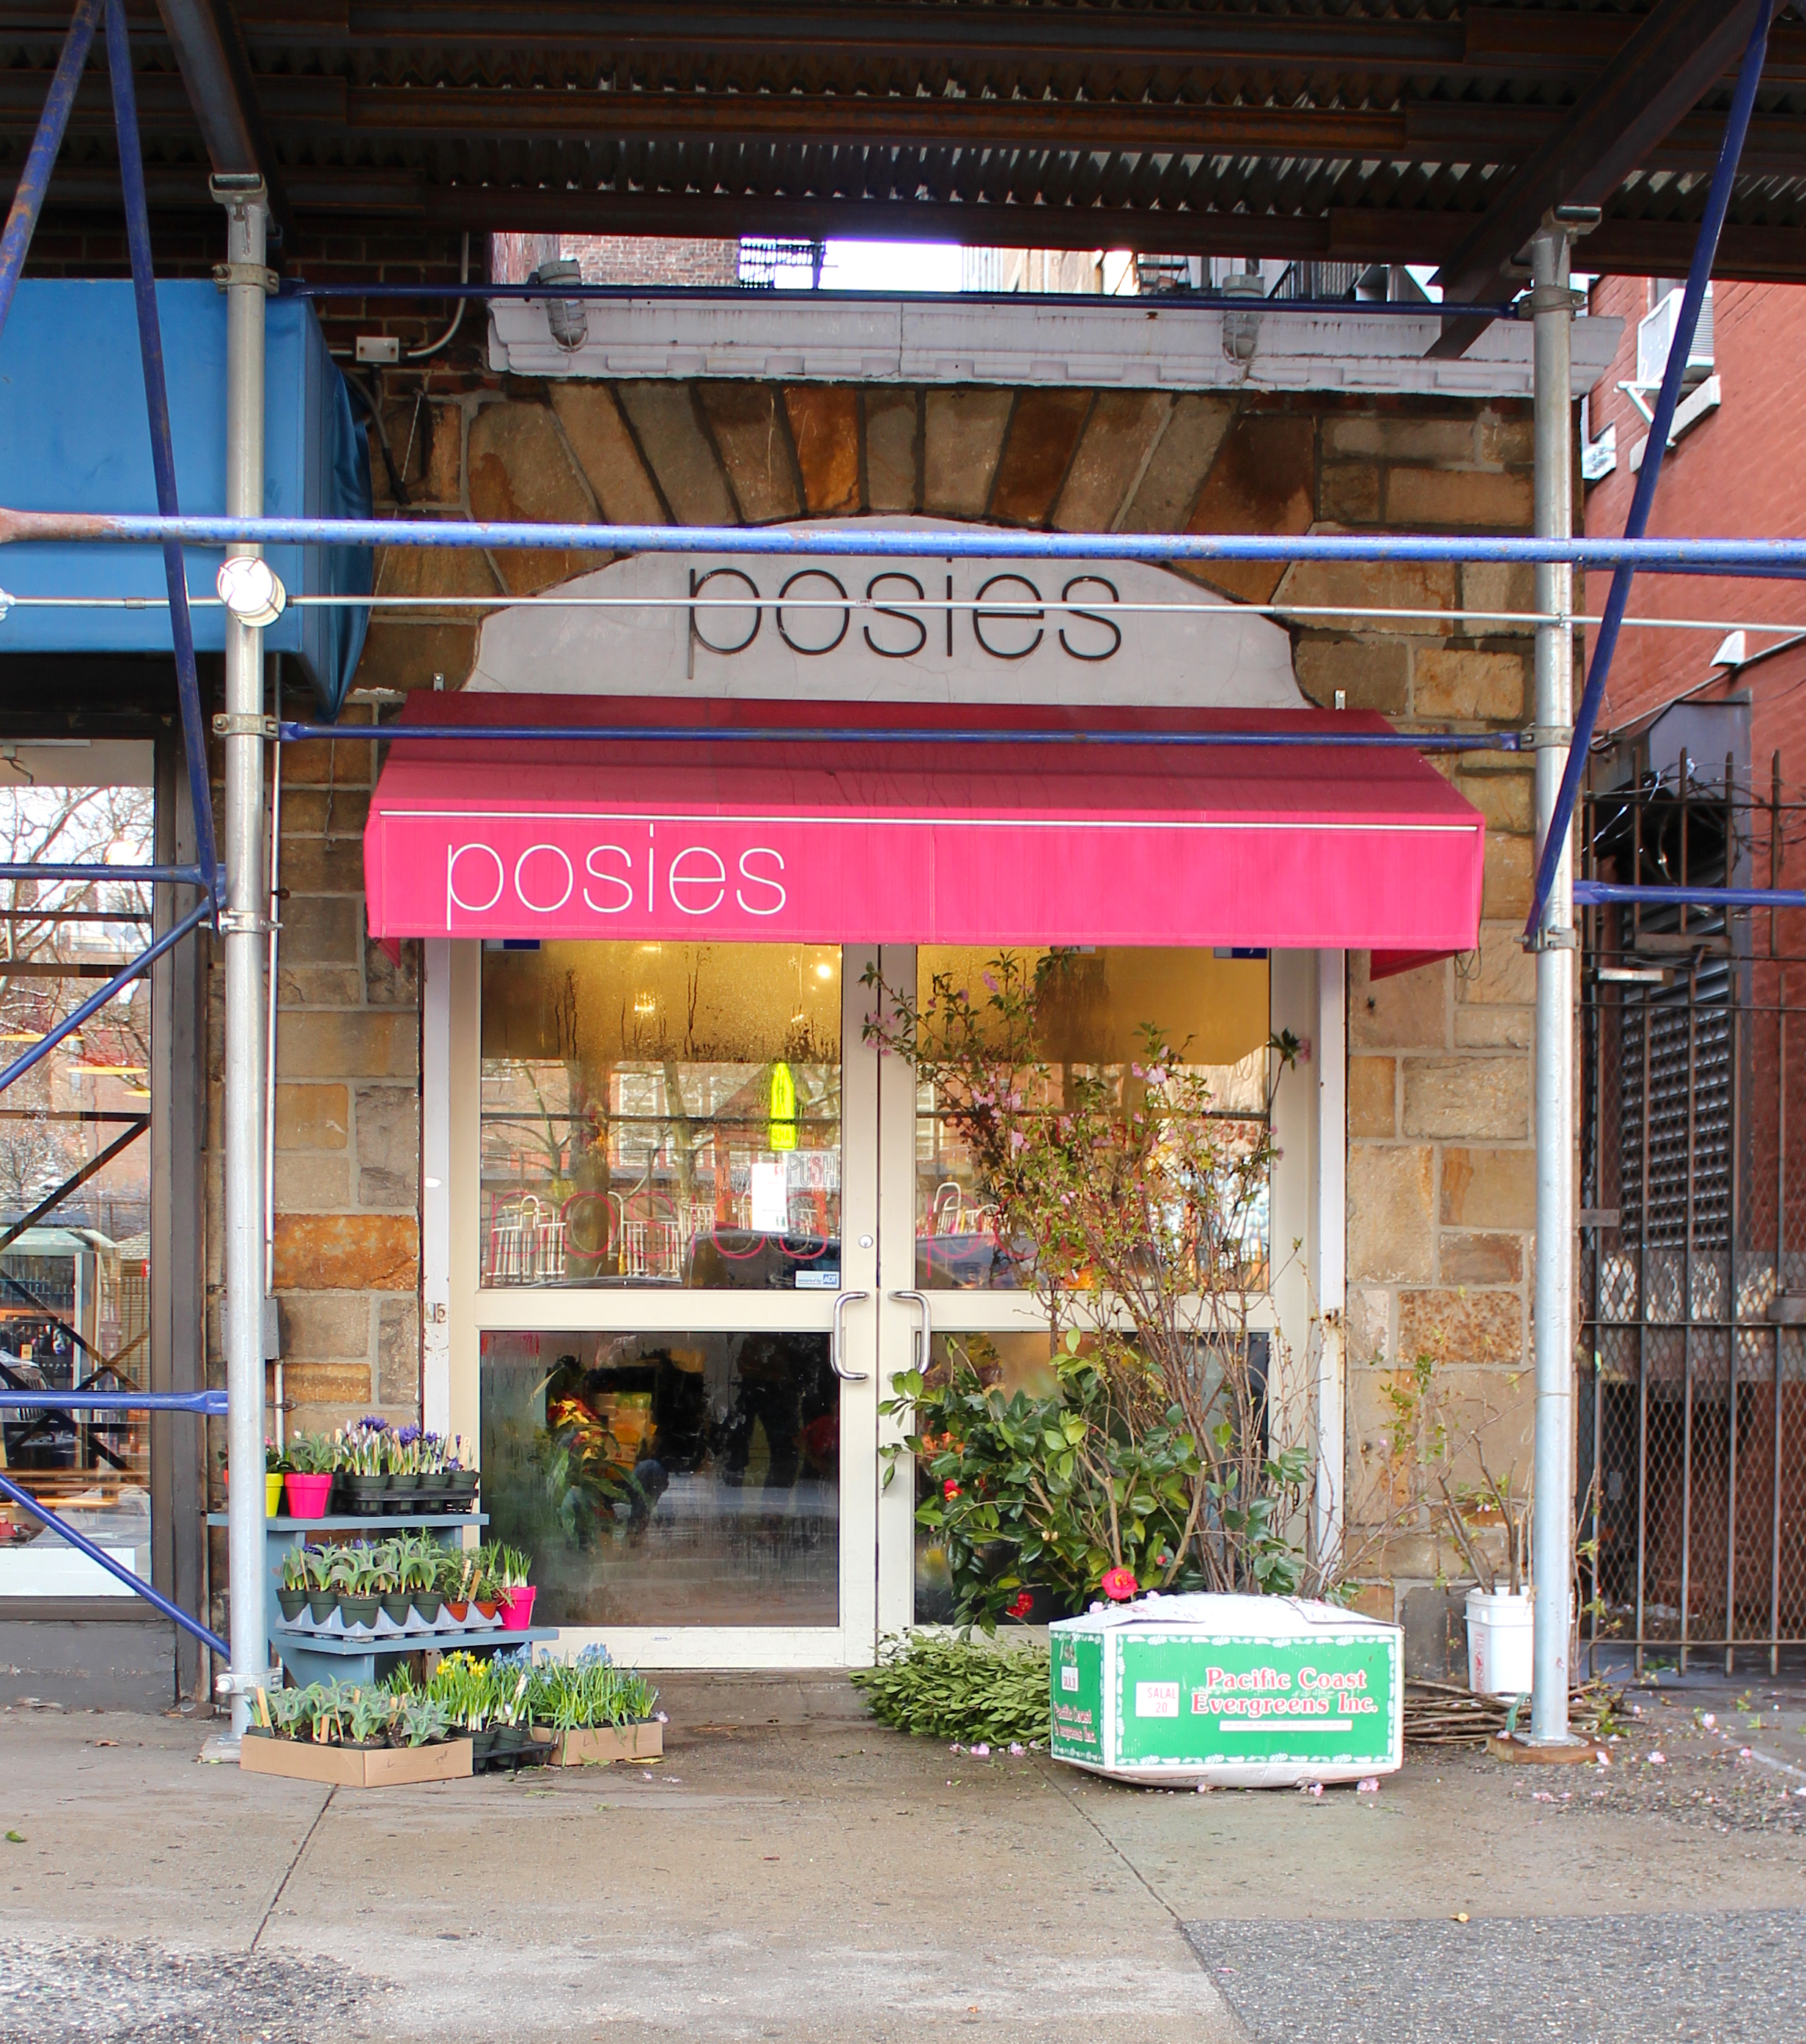 A bustling flower shop, Posies, resides in the place of the former nail salon.